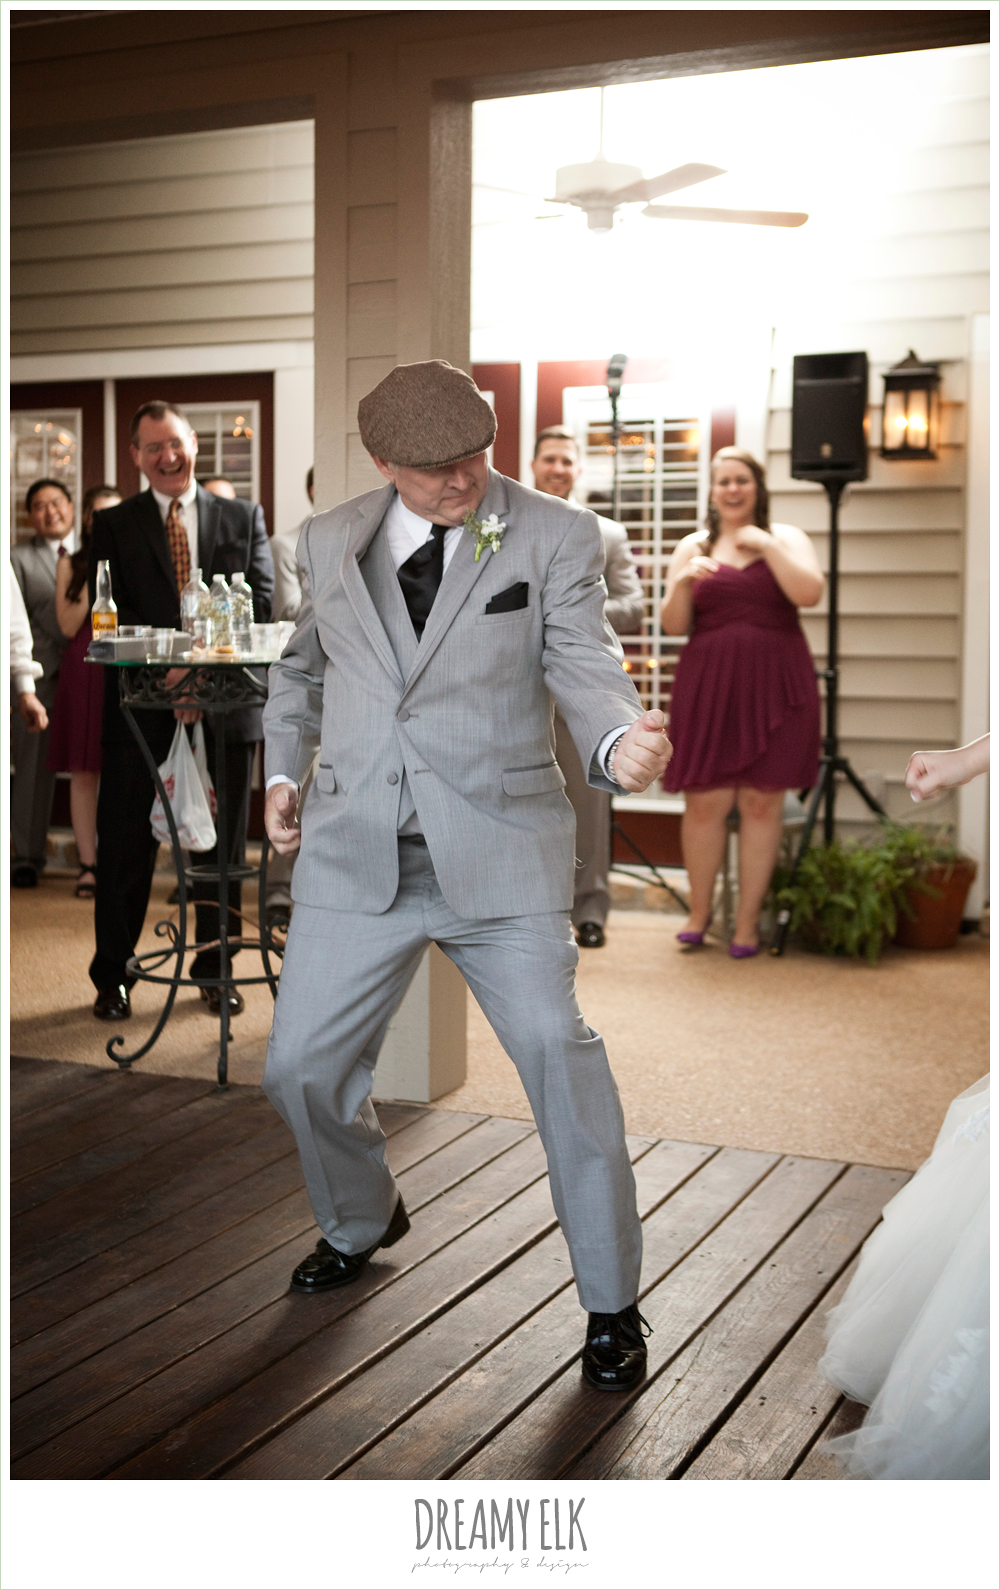 funny, father of the bride dancing, october wedding, inn at quarry ridge, dreamy elk photography and design